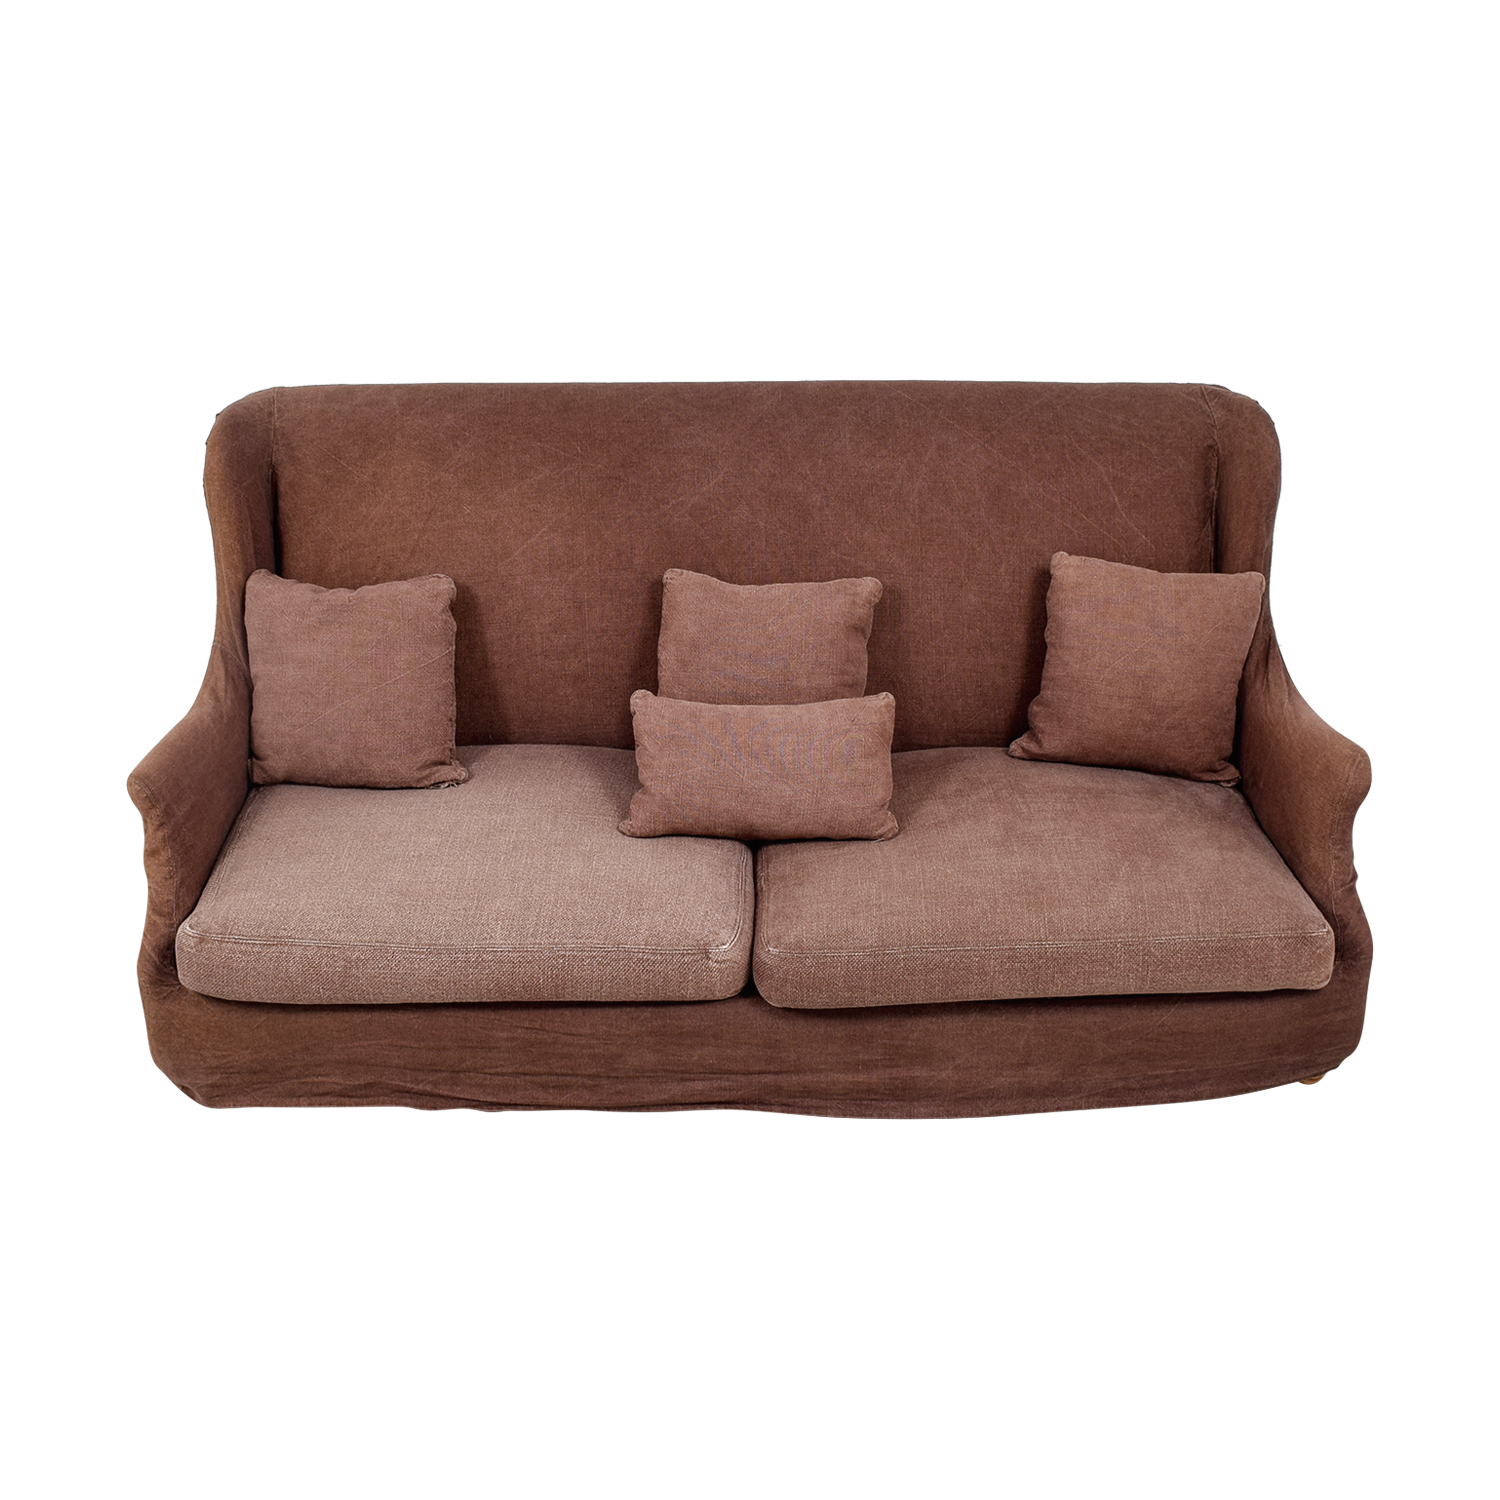 ABC Carpet & Home ABC Carpet & Home Brown Washed Linen Slipcovered Sofa coupon